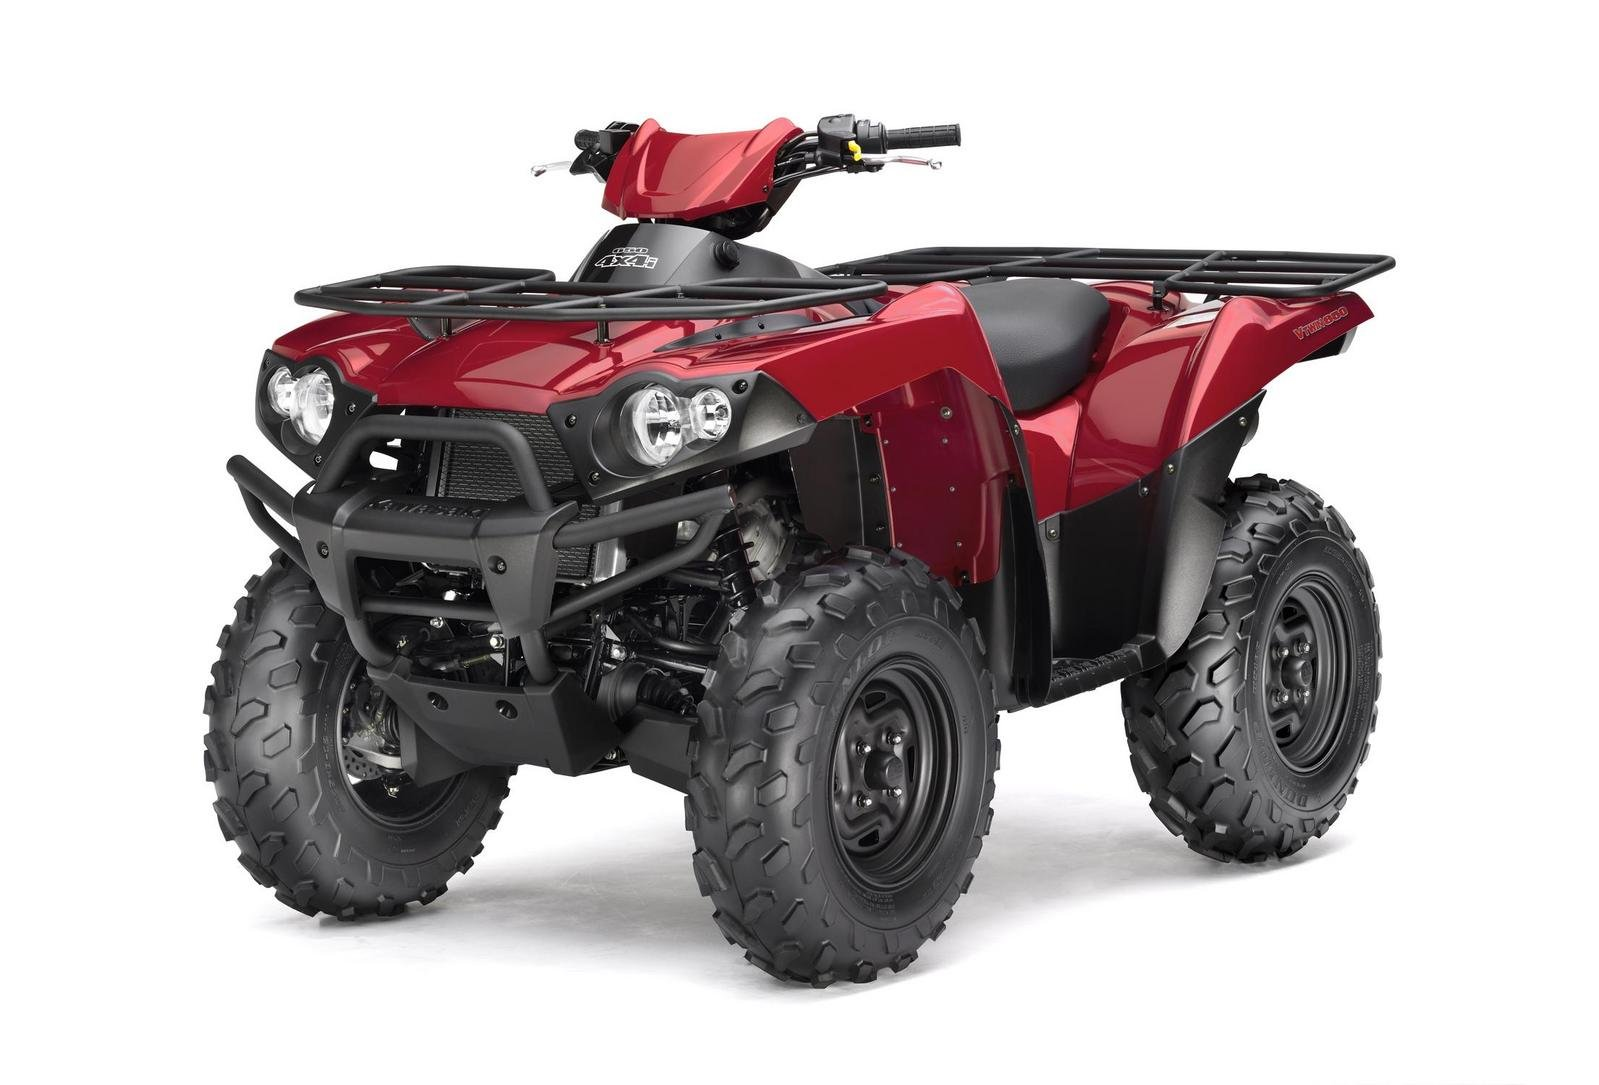 Kawasaki Brute Force 650 4x4i Pictures Photos